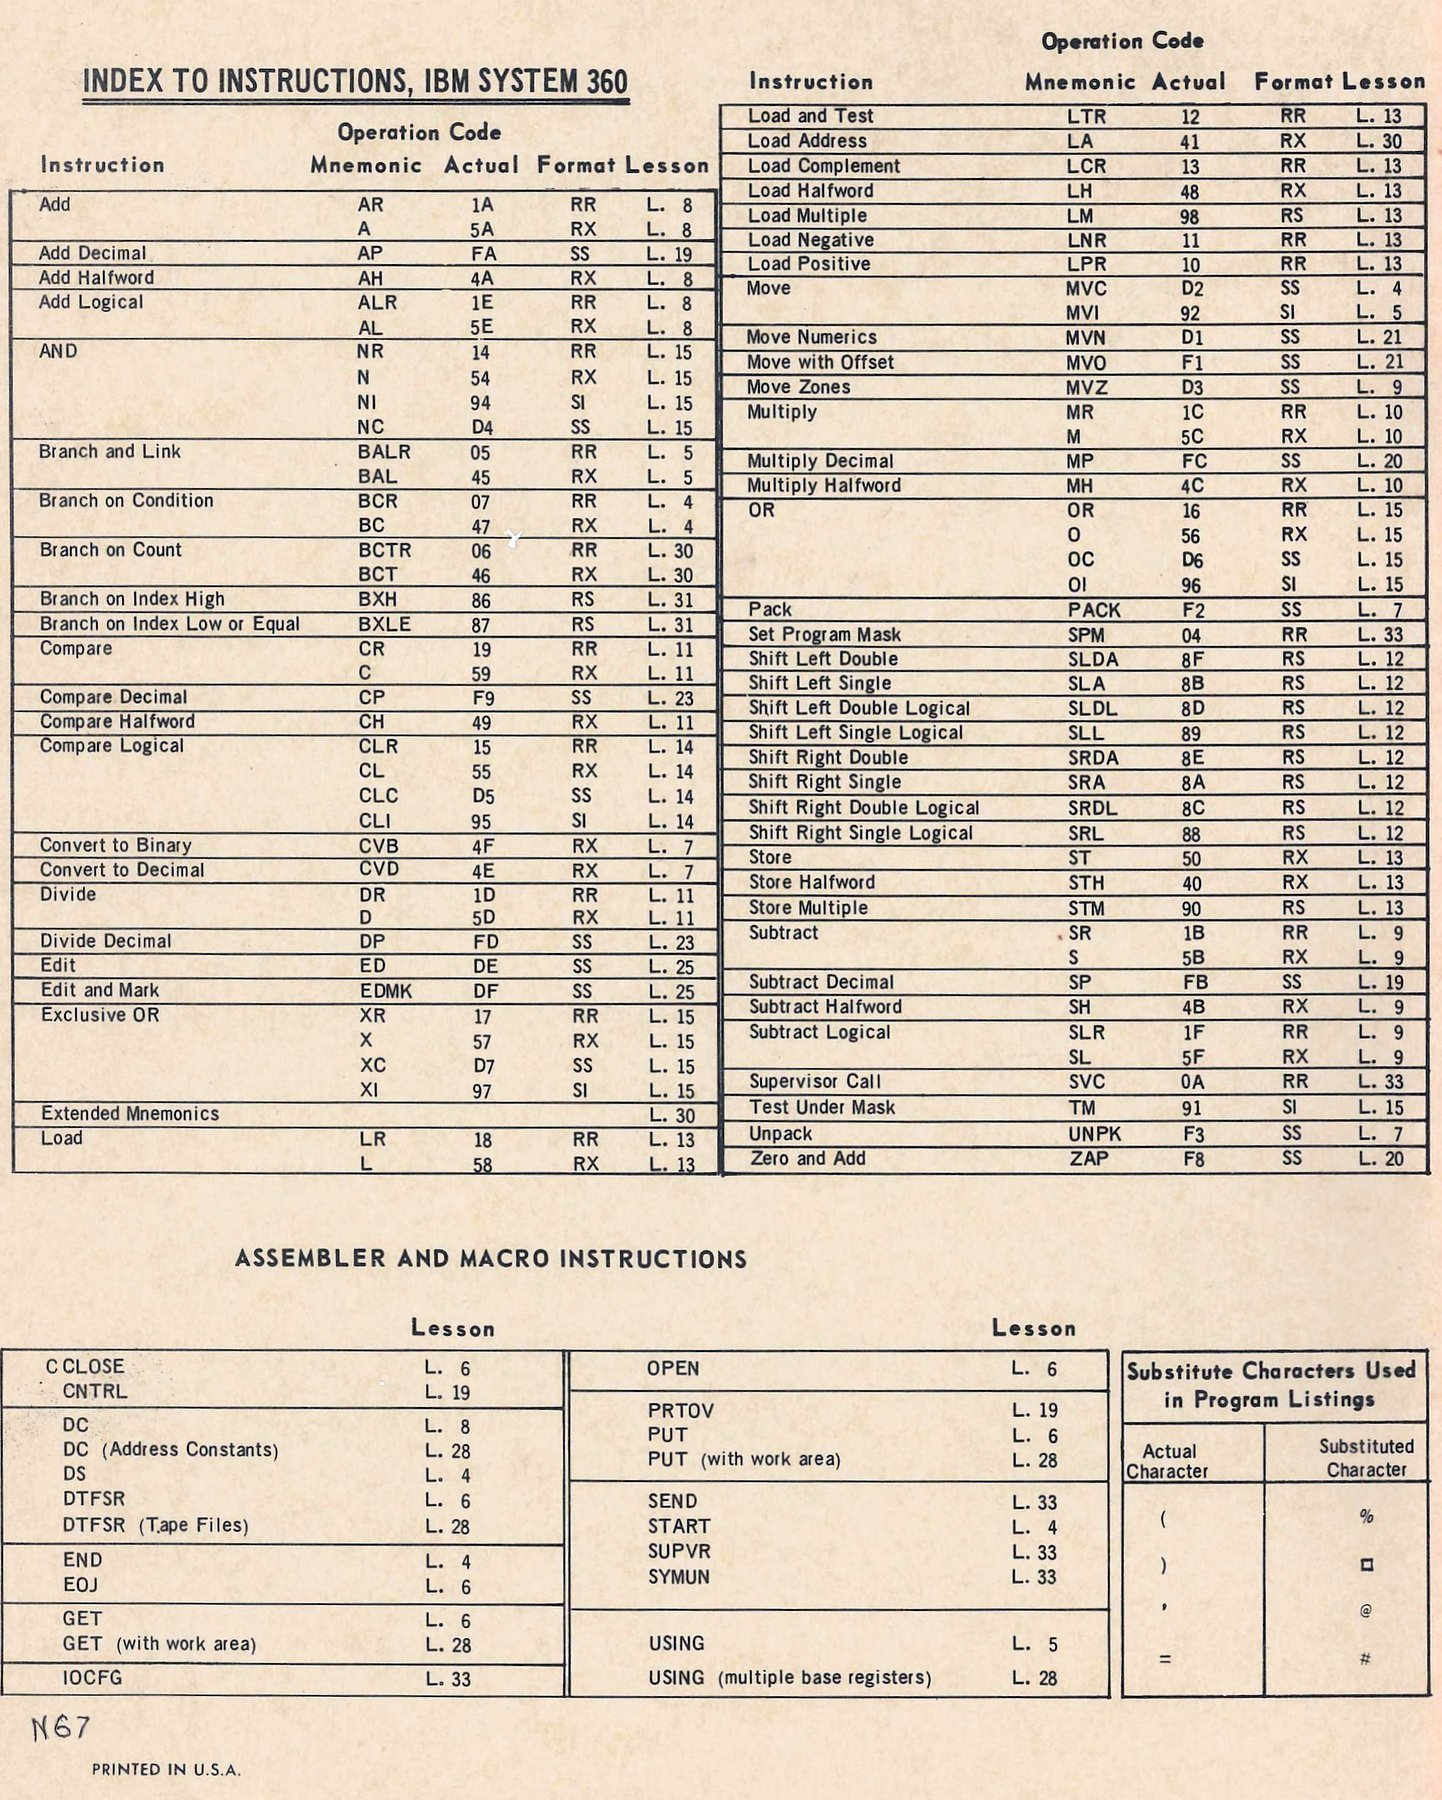 Index to 1960s computer programming instructions for the IBM System 360